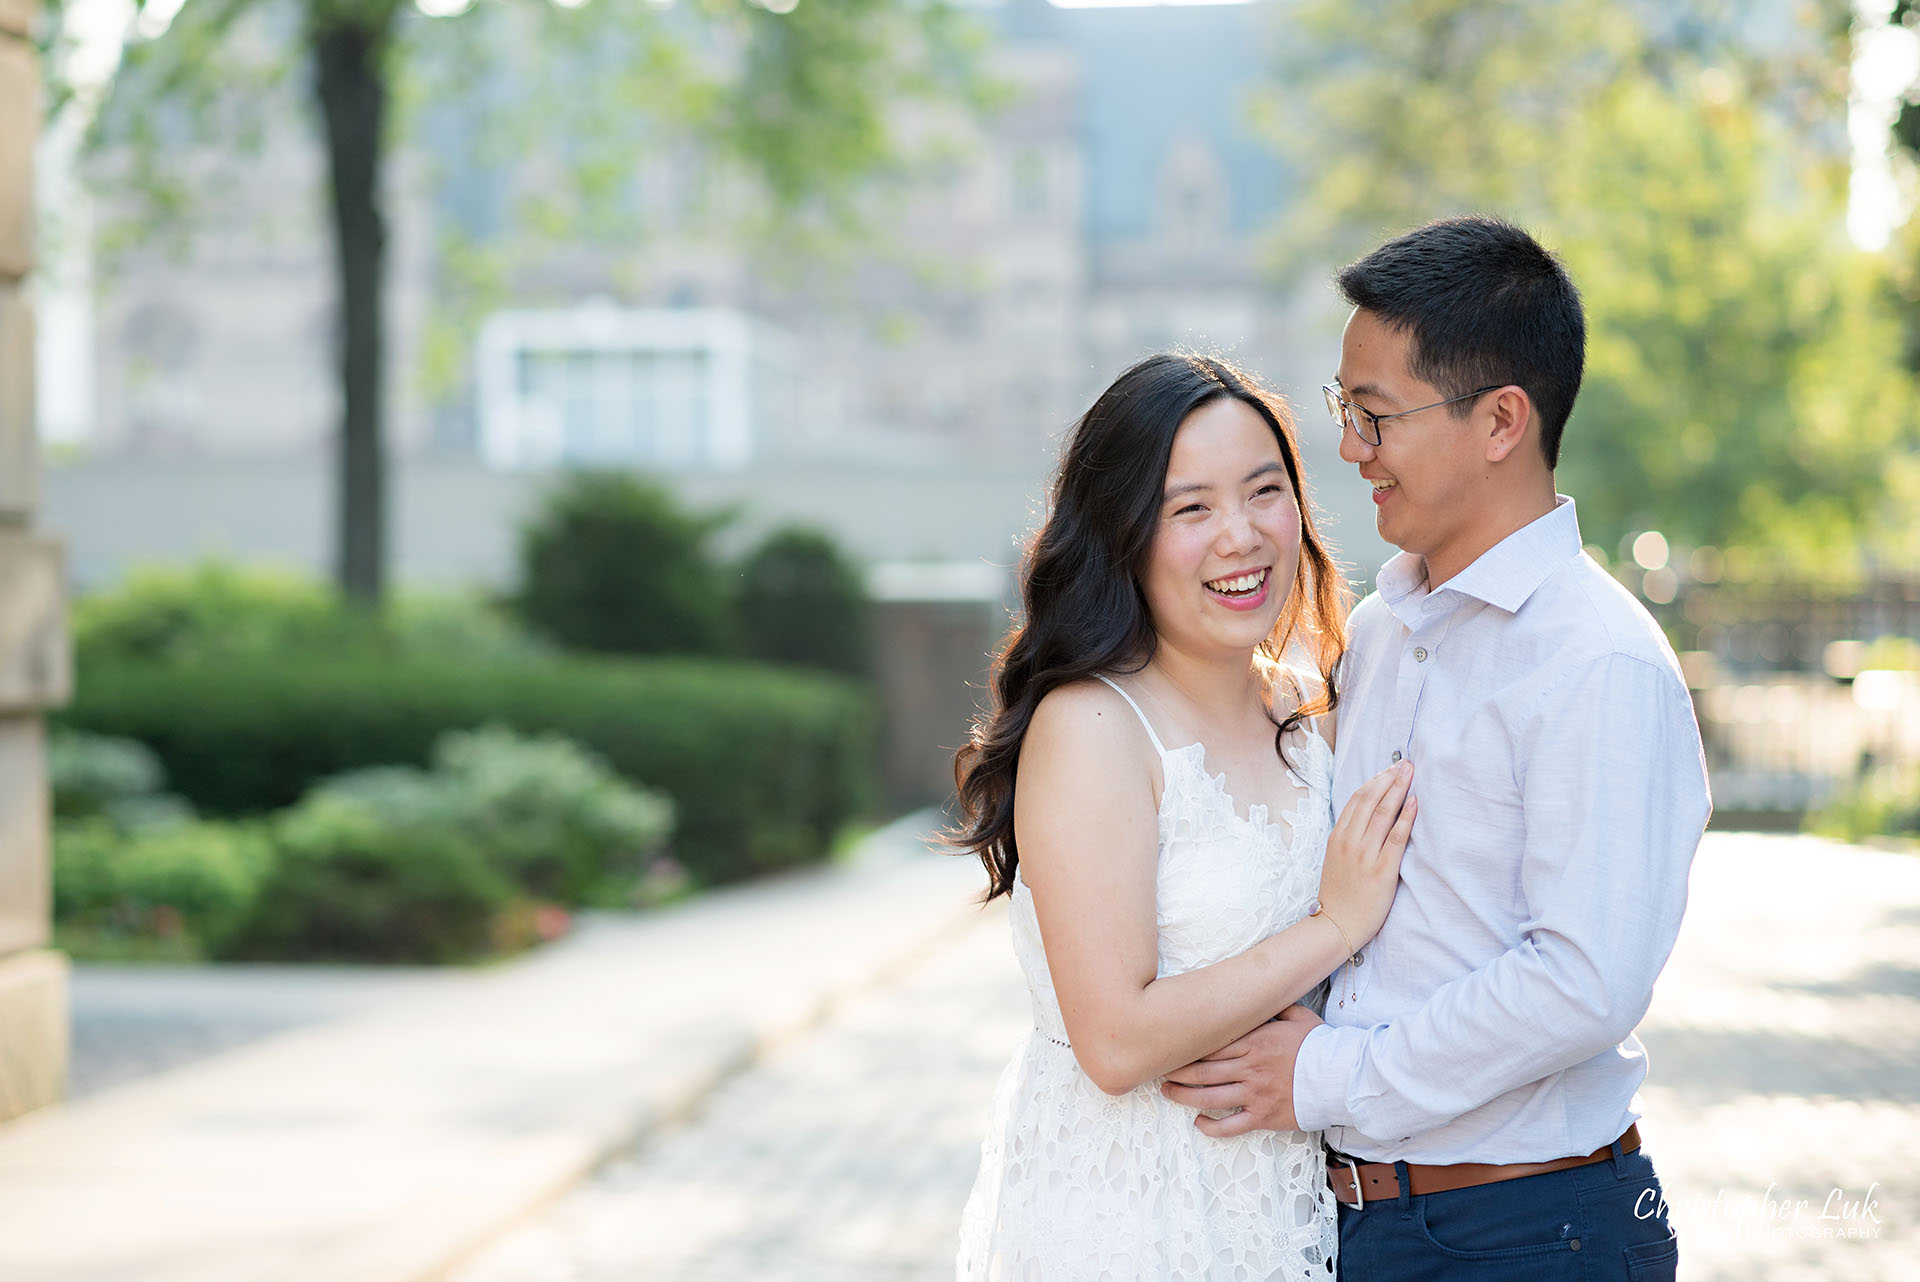 Christopher Luk Wedding Photographer Osgoode Hall Toronto Bride Groom Cobblestone Hug Holding Each Other Intimate Snuggle Laugh Natural Candid Photojournalistic